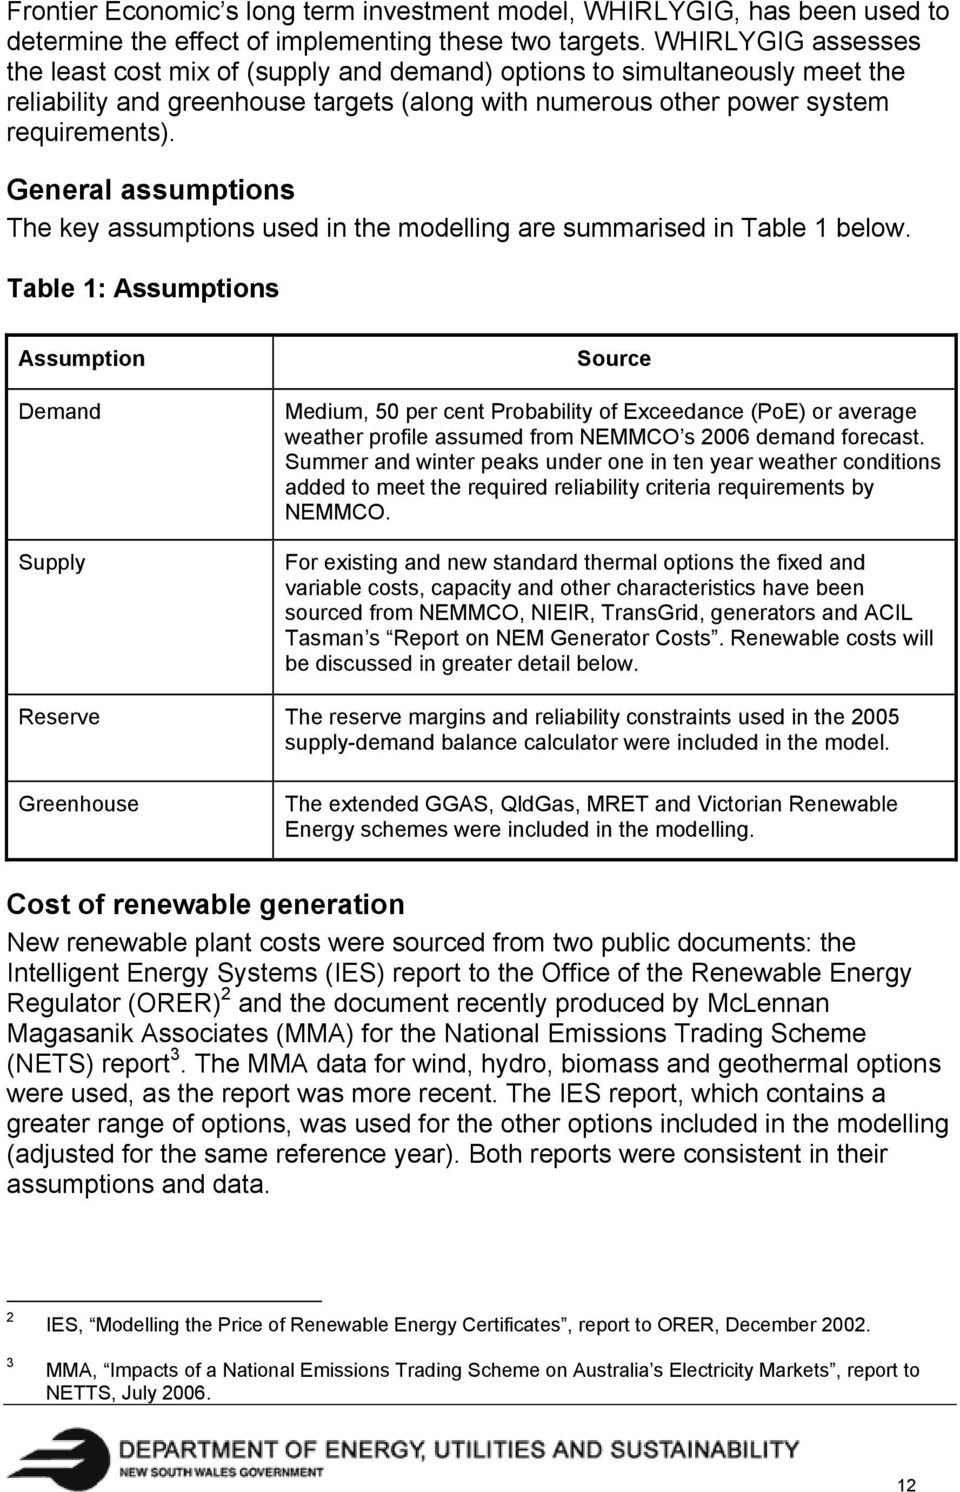 General assumptions The key assumptions used in the modelling are summarised in Table 1 below.